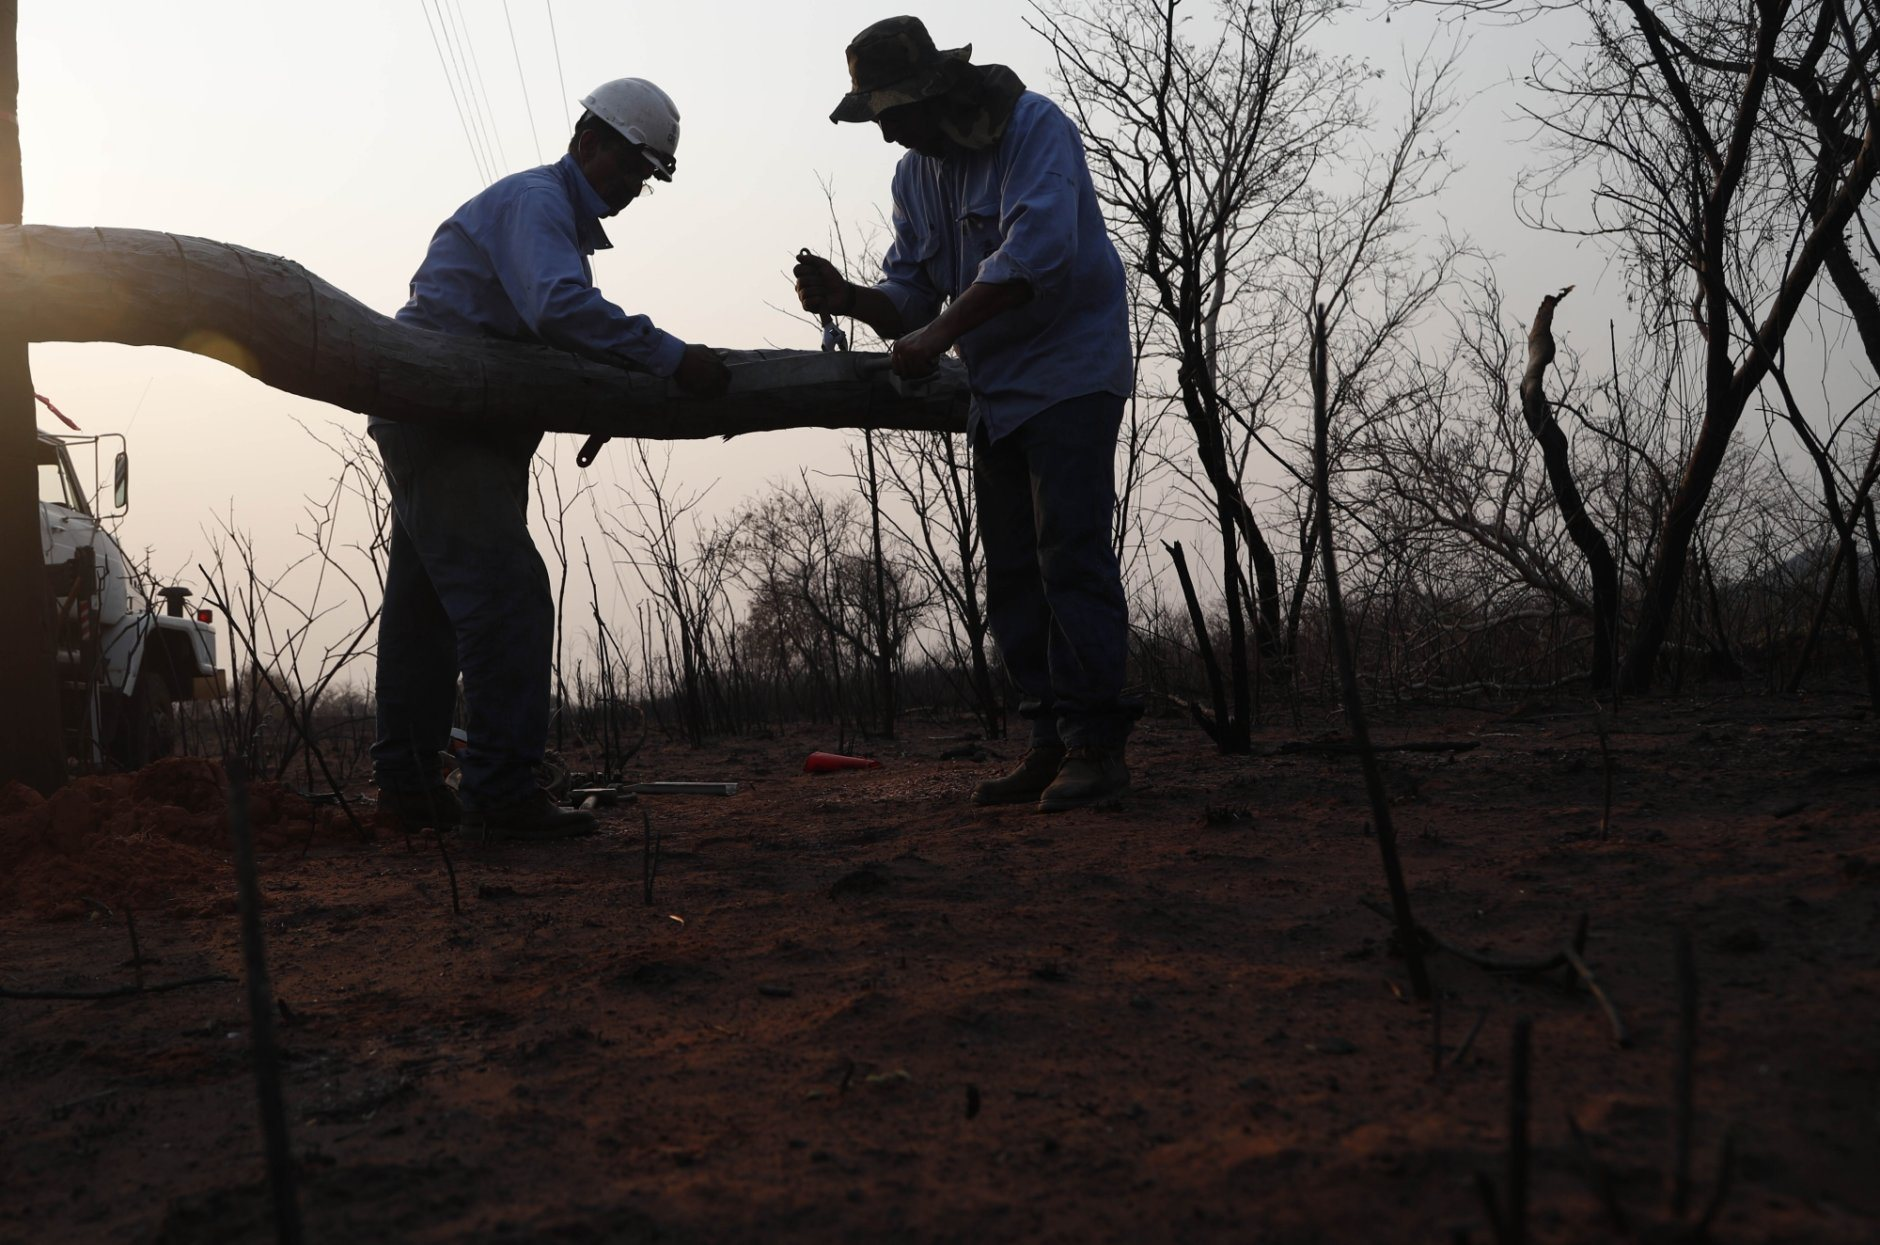 Electrical network workers repair an electric power pole, in the aftermath of a forest fire near the town of Robore, Bolivia, Friday, Aug. 23, 2019. Bolivia, along with Brazil, is struggling to contain wildfires, many believed to have been set by farmers clearing land for cultivation. (AP Photo/Juan Karita)